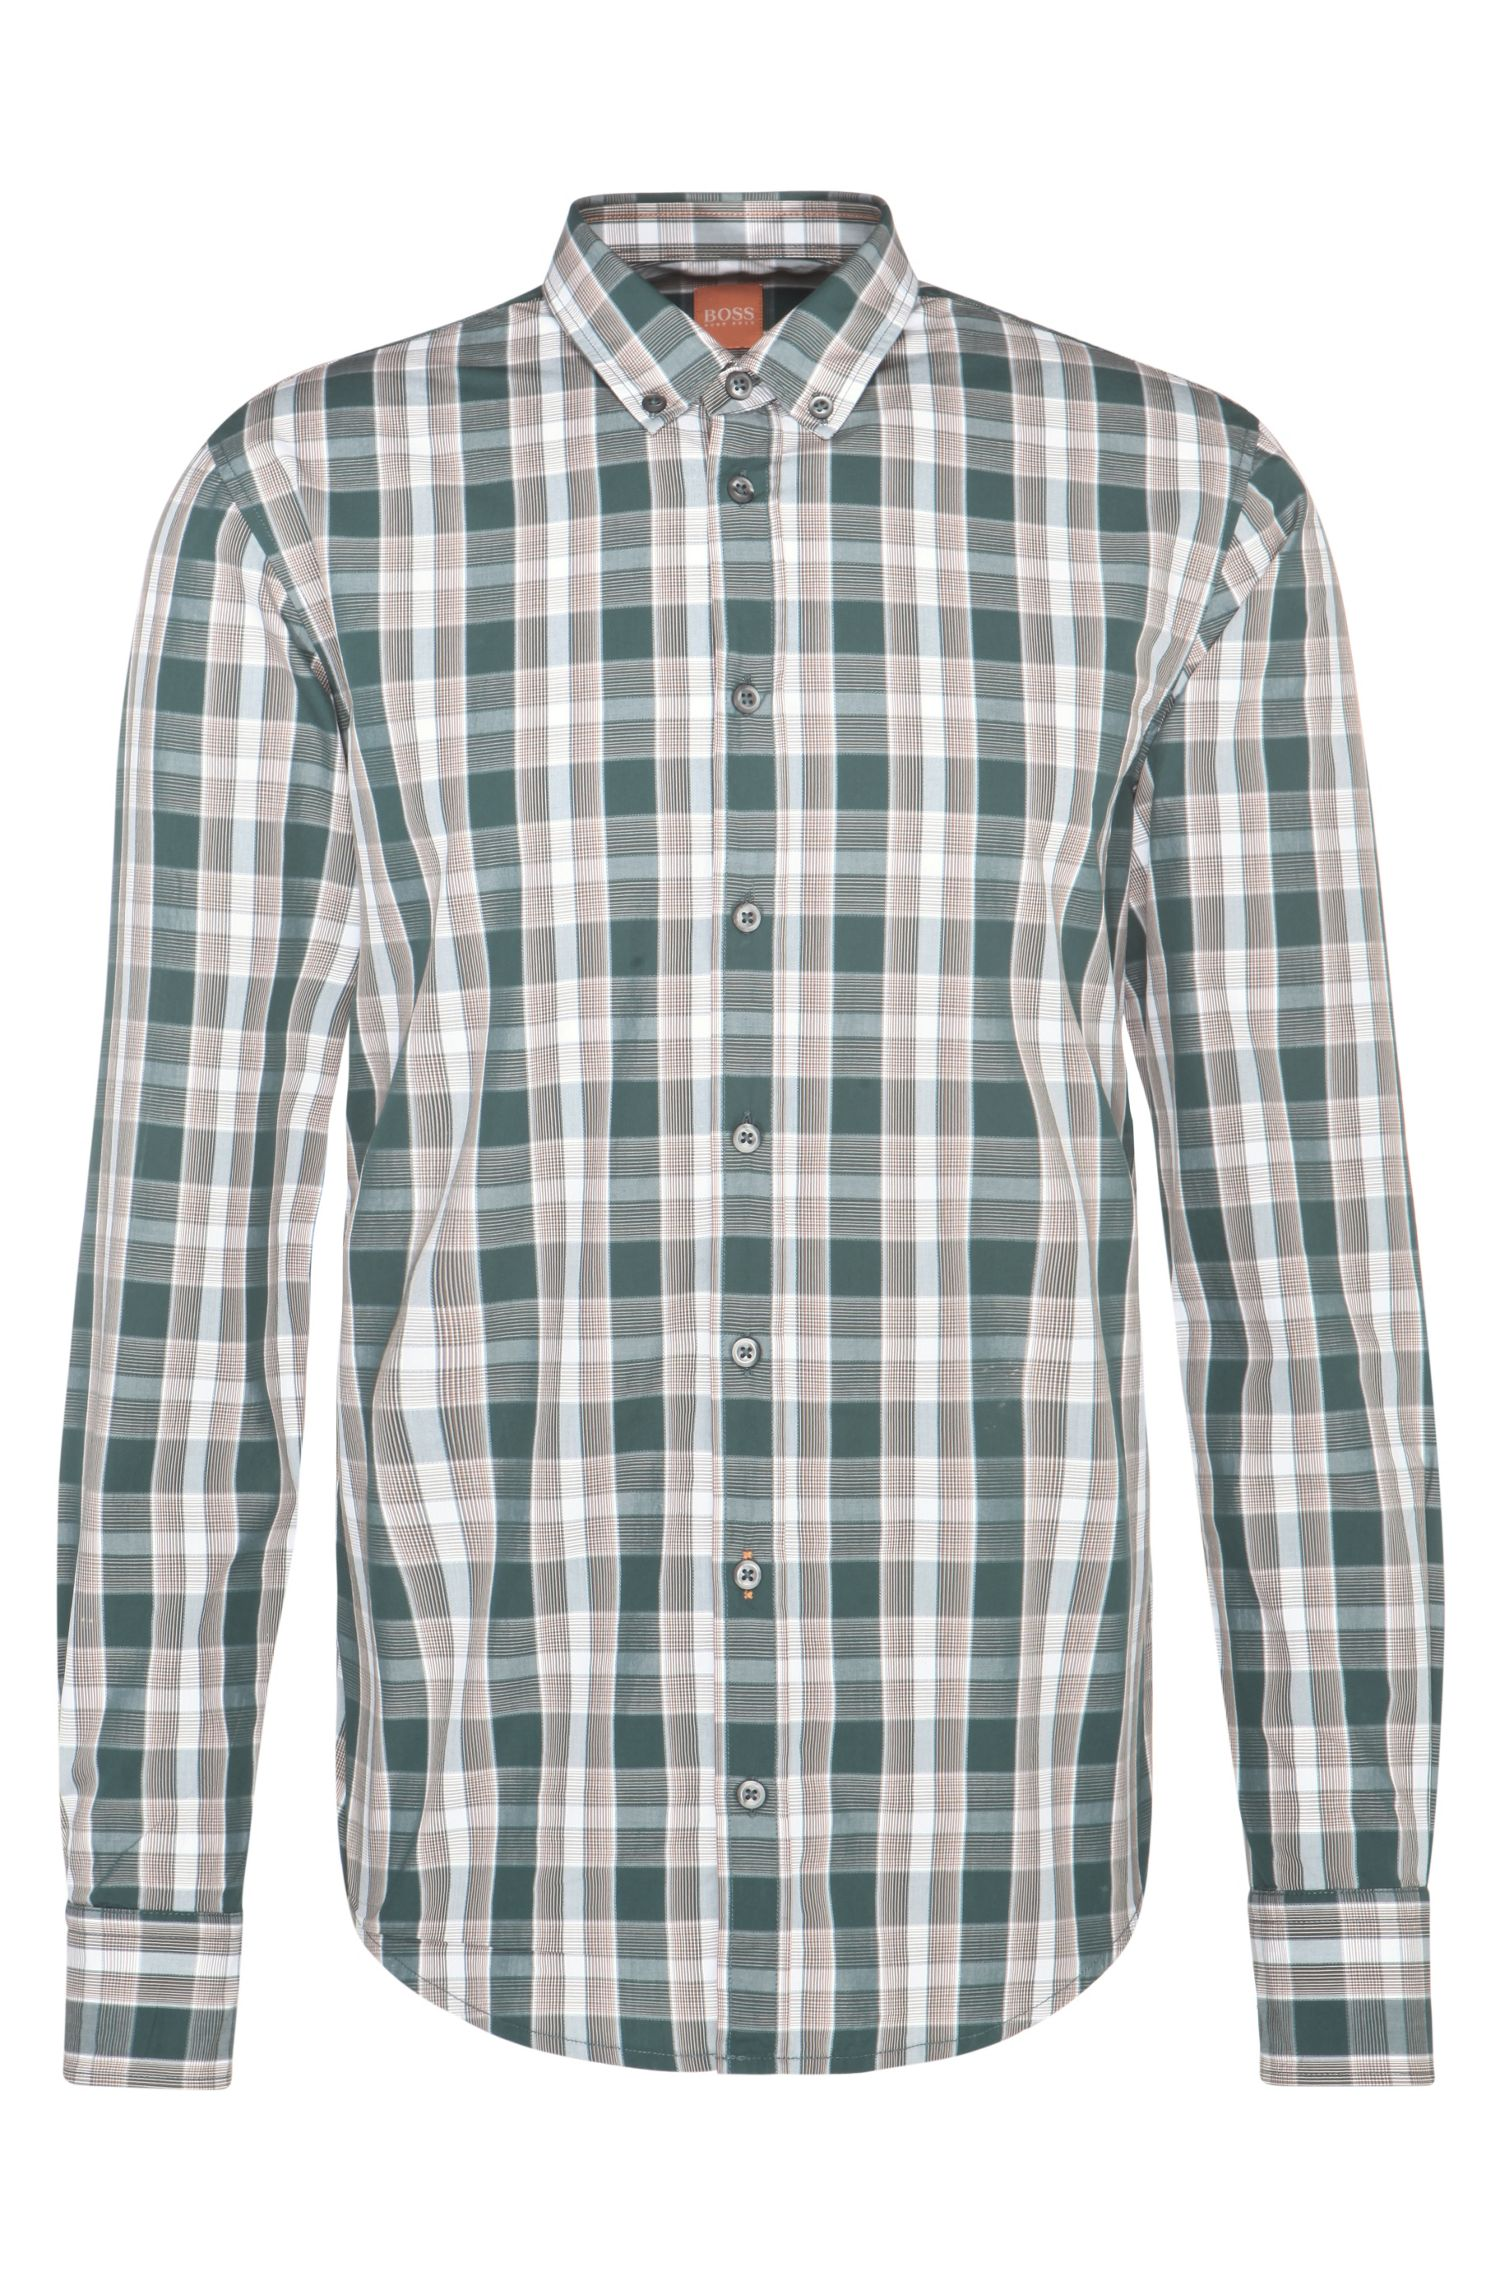 'EdipoE' | Slim Fit, Cotton Printed Button Down Shirt